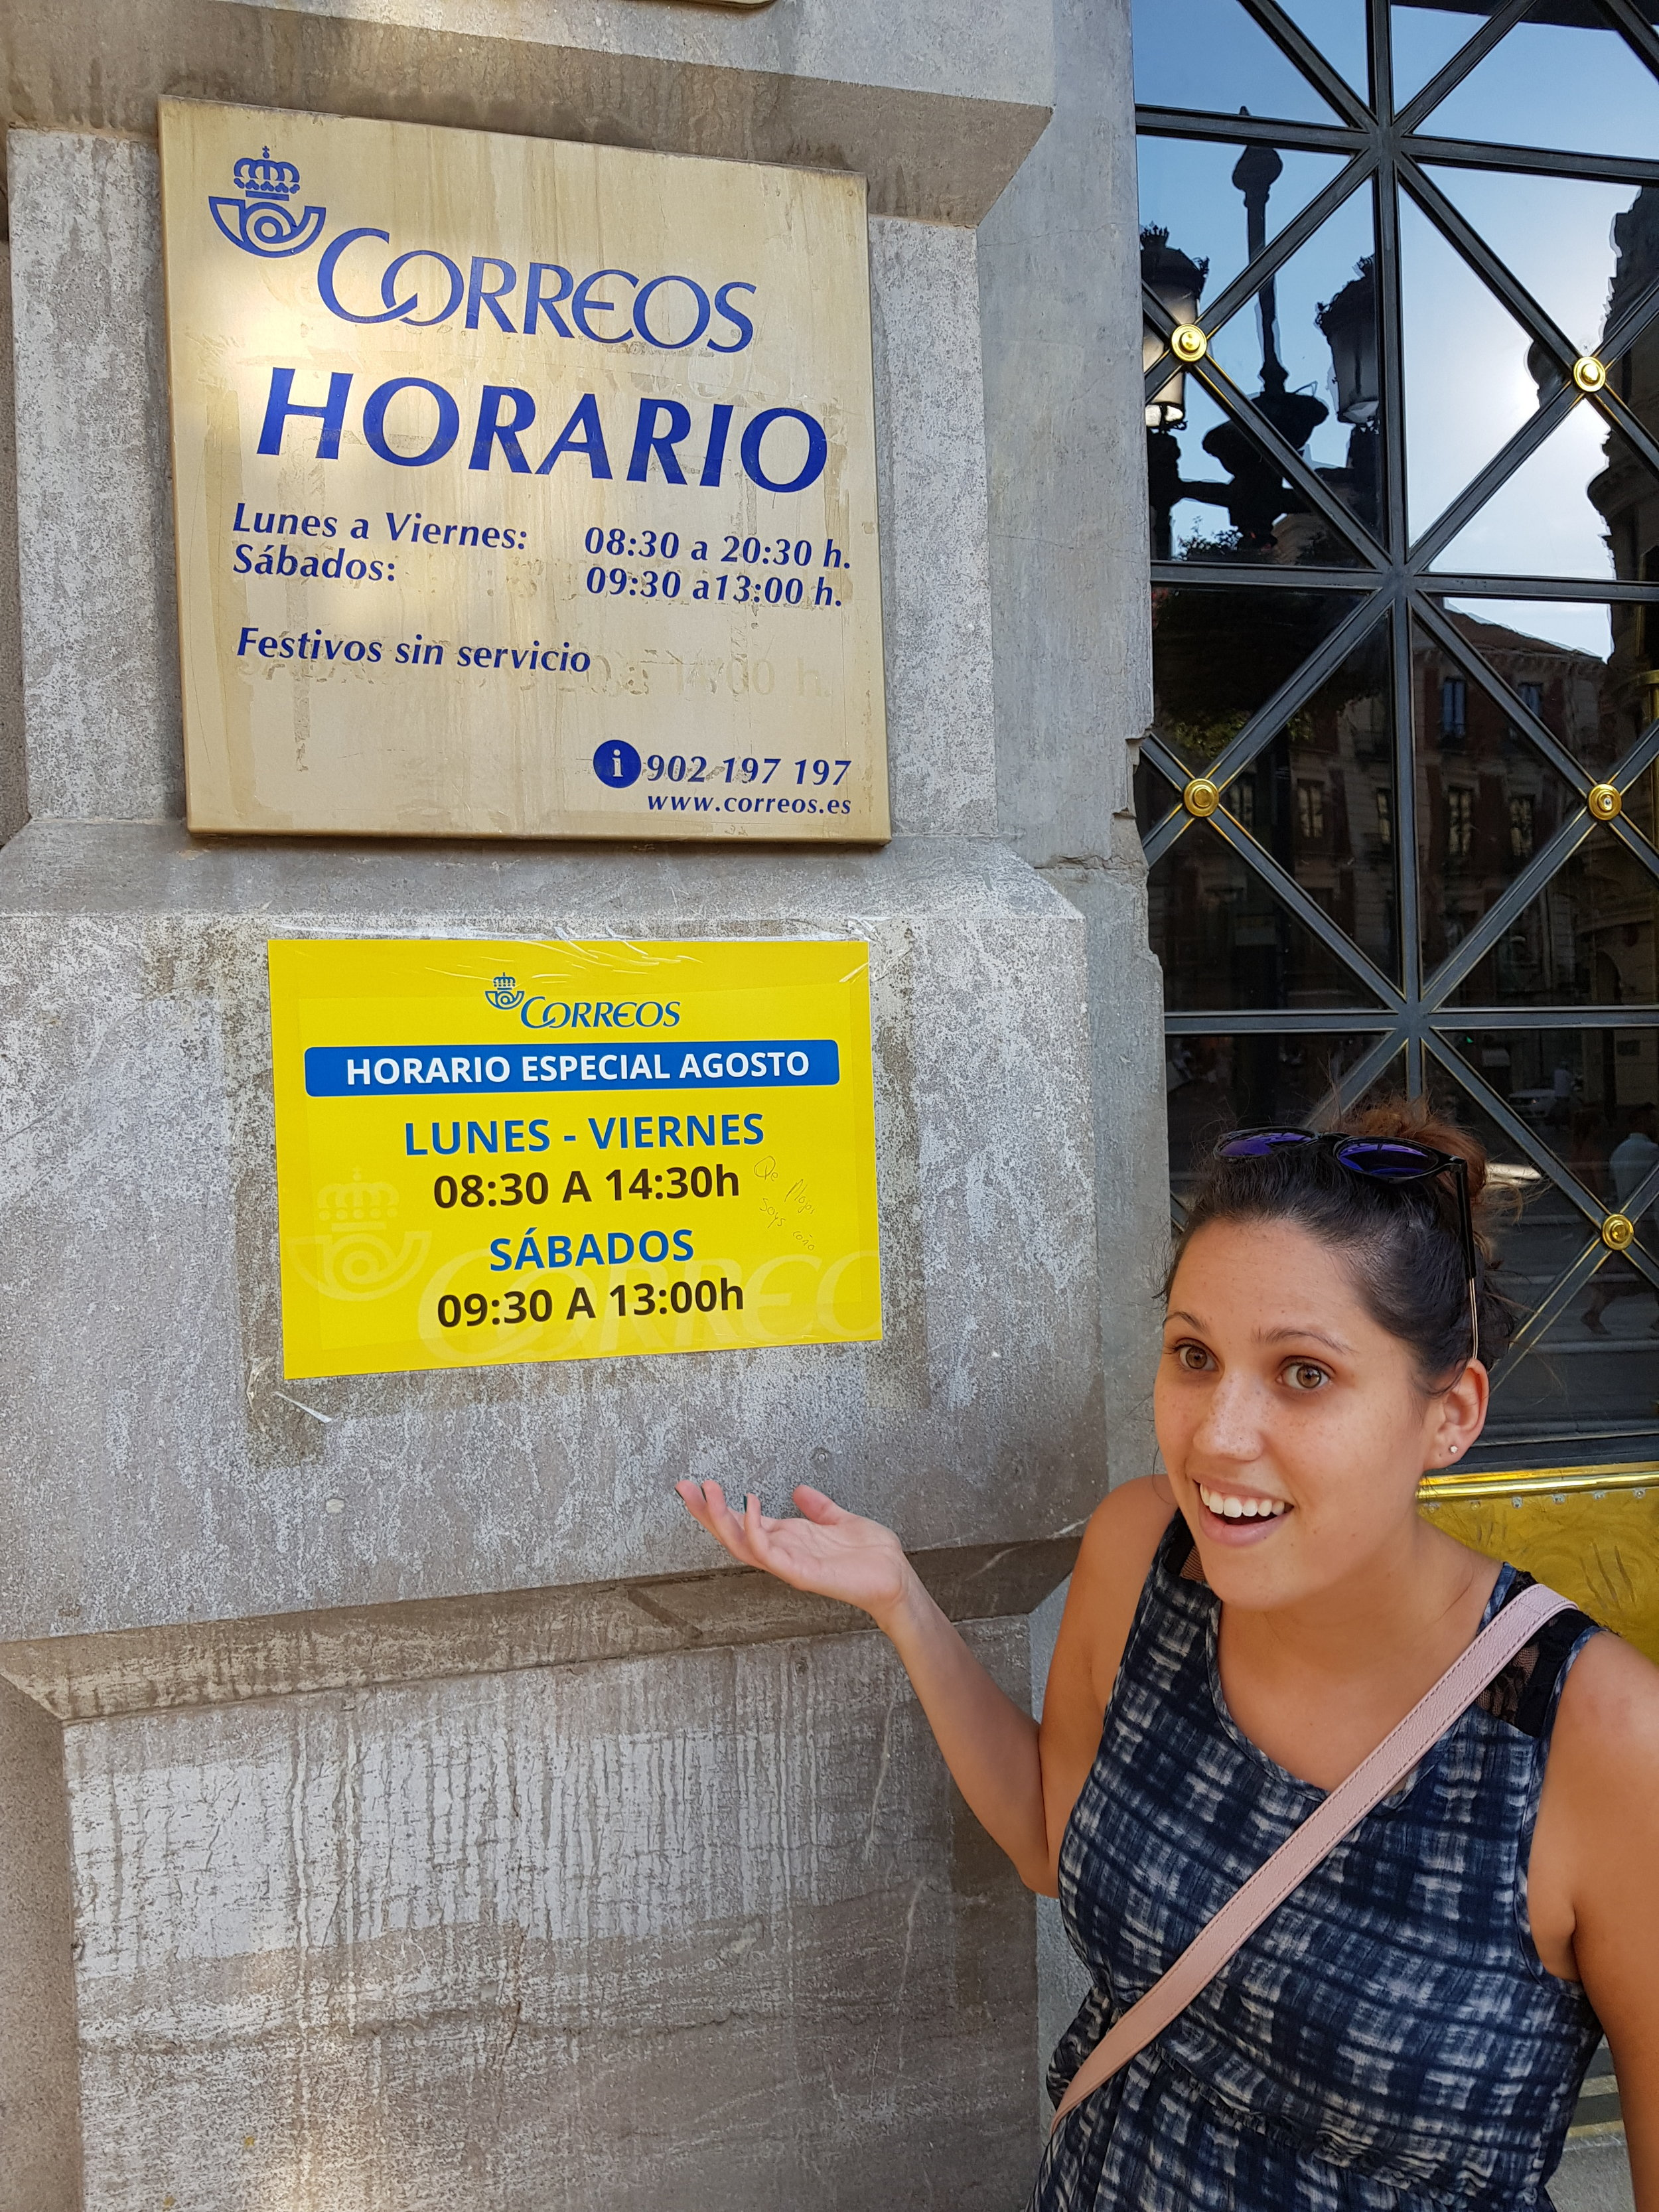 As with most offices in Spain, be sure to check the timetable before you head out to  correos,  especially in the summer!